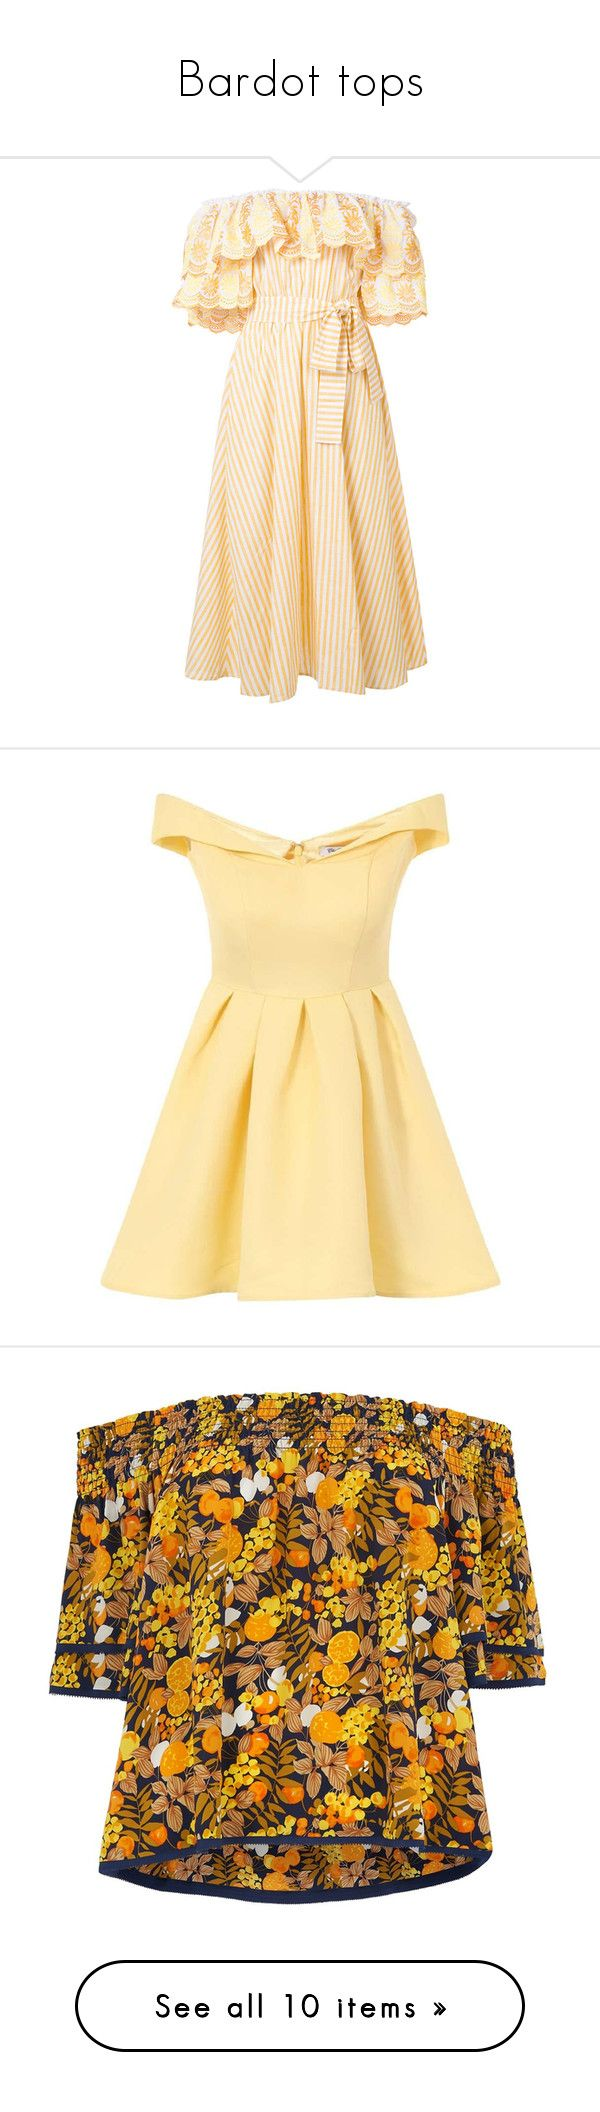 """""""Bardot tops"""" by victoriasb94 ❤ liked on Polyvore featuring dresses, beige dress, yellow off the shoulder dress, yellow striped dress, flutter-sleeve dresses, striped off the shoulder dress, yellow dresses, yellow, beige pleated dress and calf length dresses"""